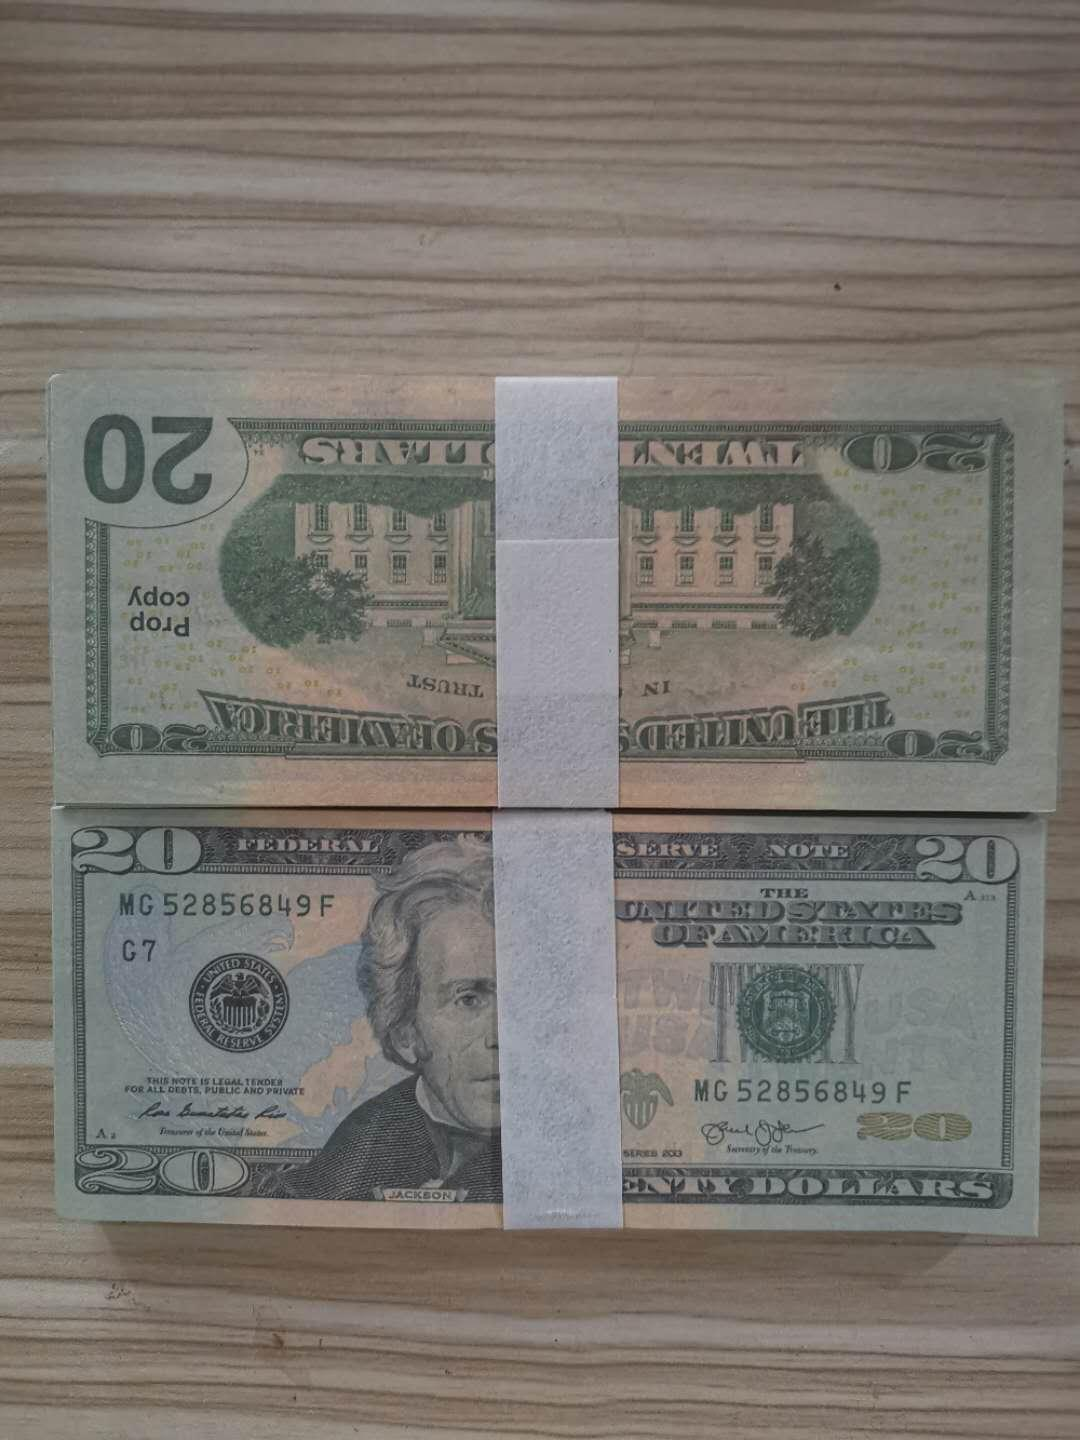 Teach banknotes to mimic the dollar Learning and Education Toys fake money paper Children Teaching aid set for USD